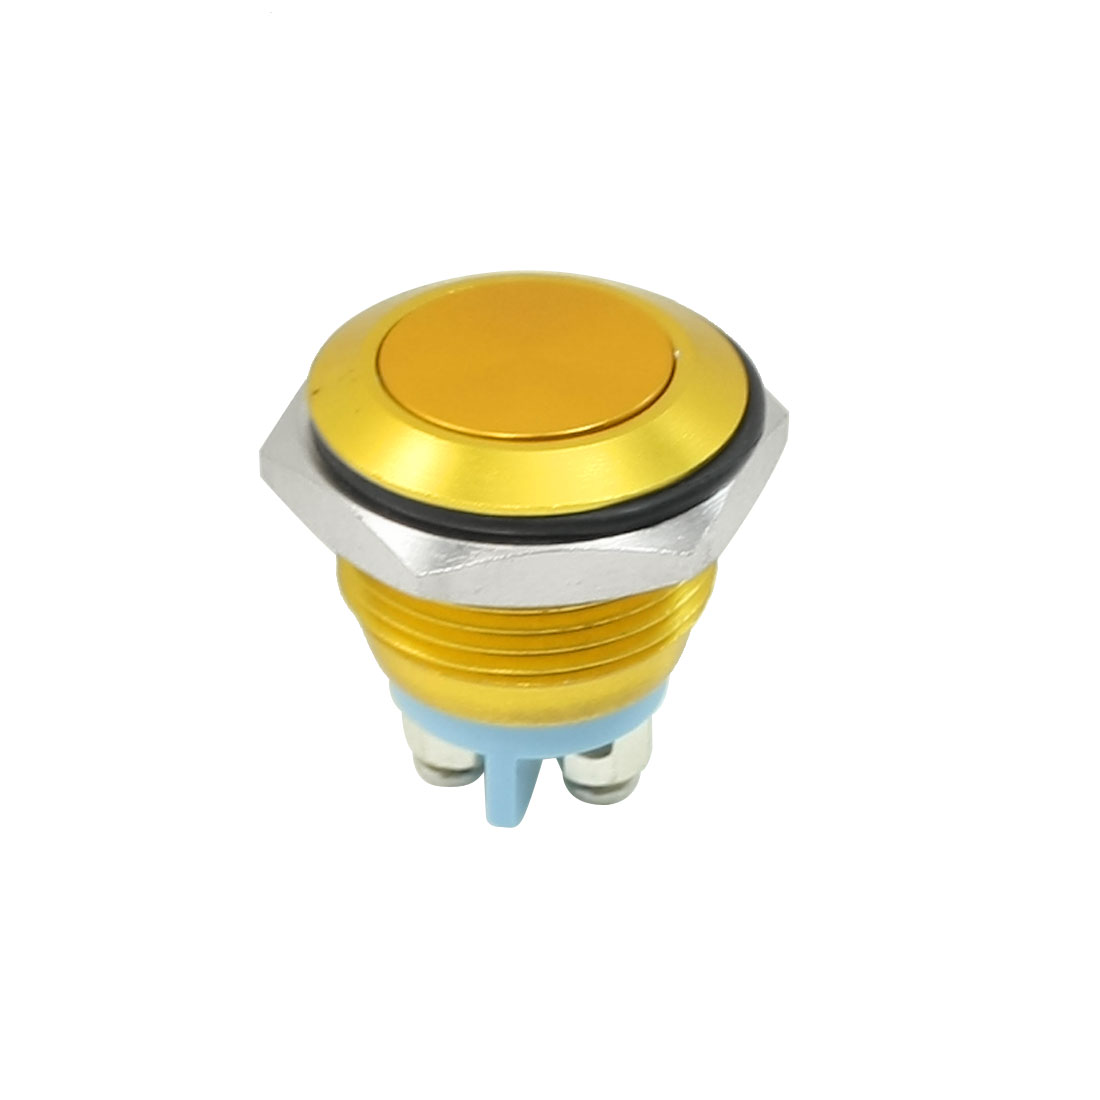 AC 250V 3A Gold Tone Flat Top Non Locking SPST N/O Push Button Switch